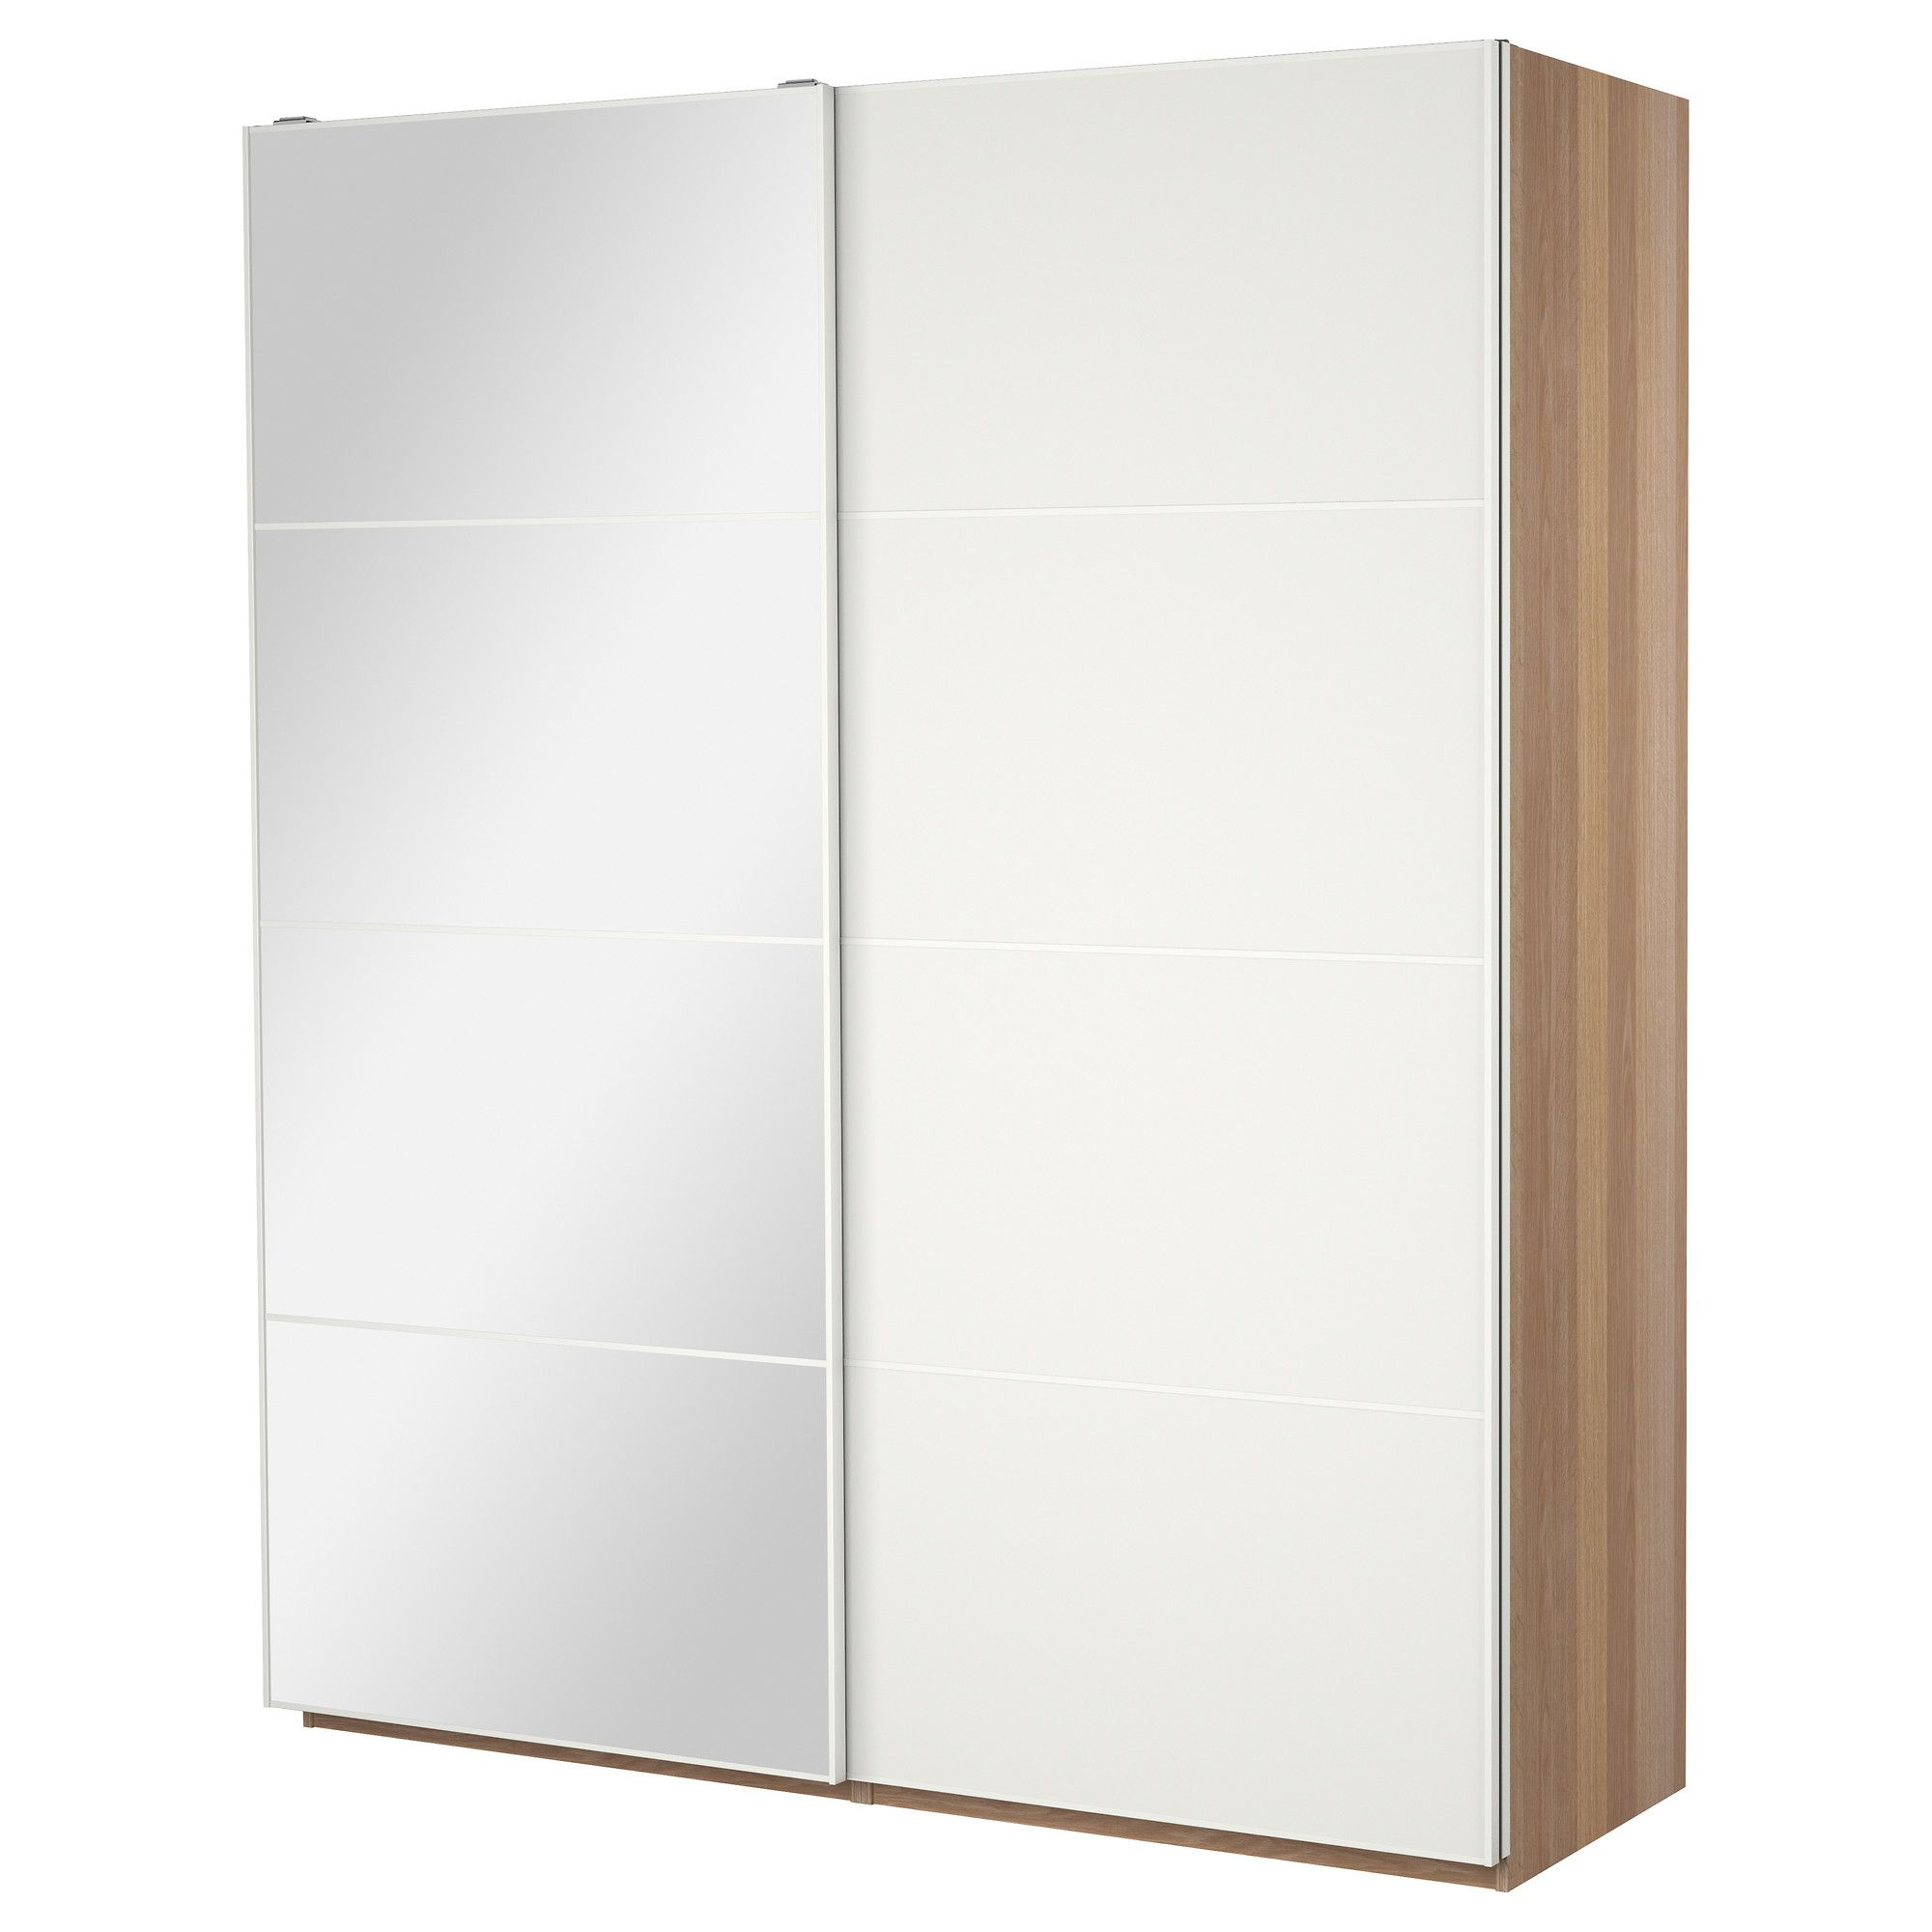 Pax Mehamn Pax Wardrobe With Sliding Doors White Stained Oak Effect Auli